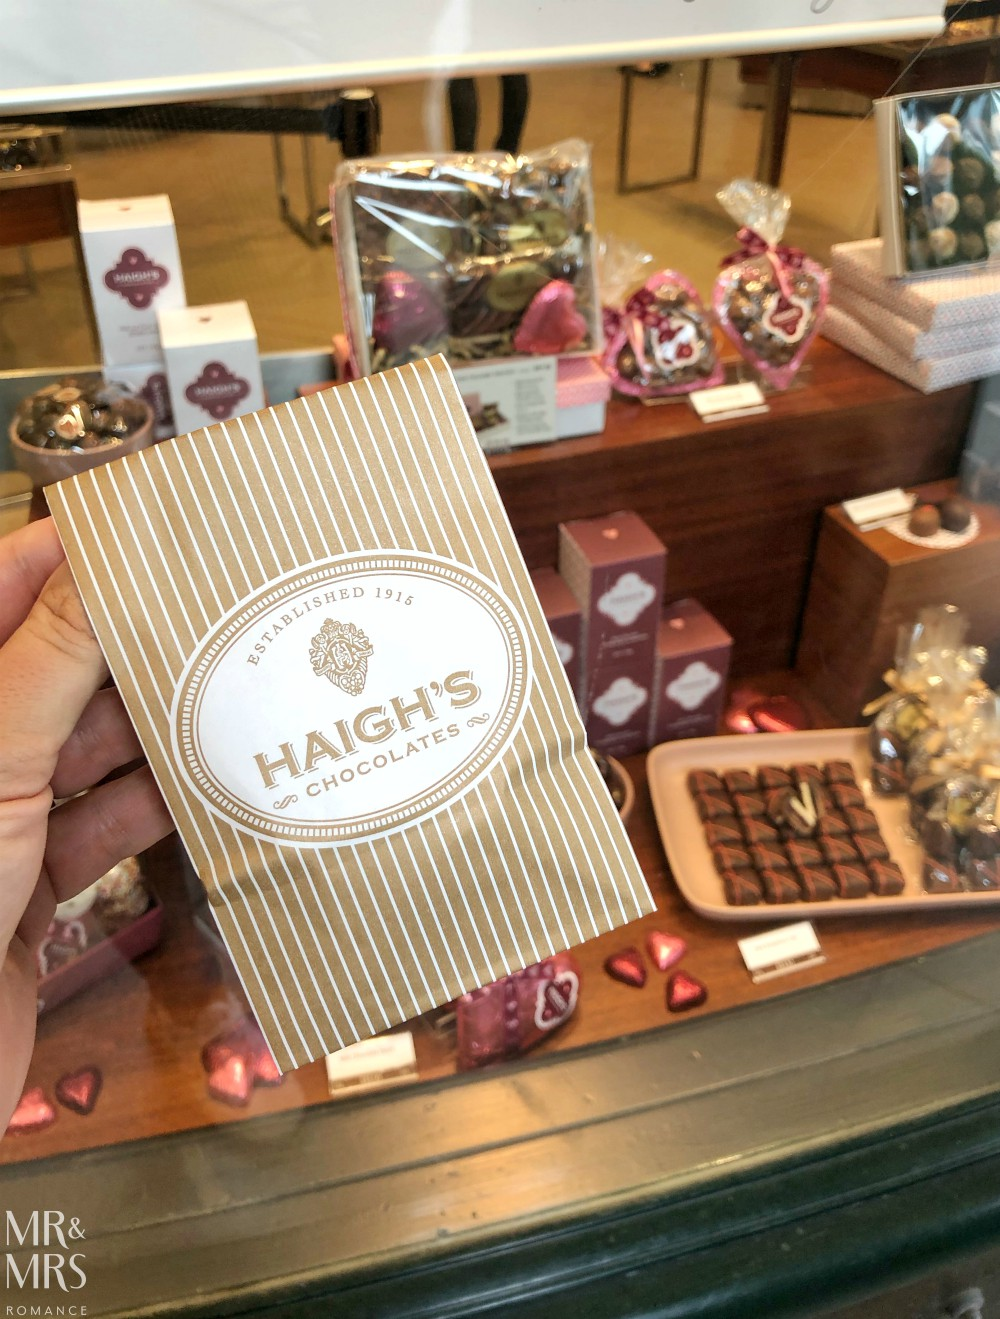 Haig's chocolates